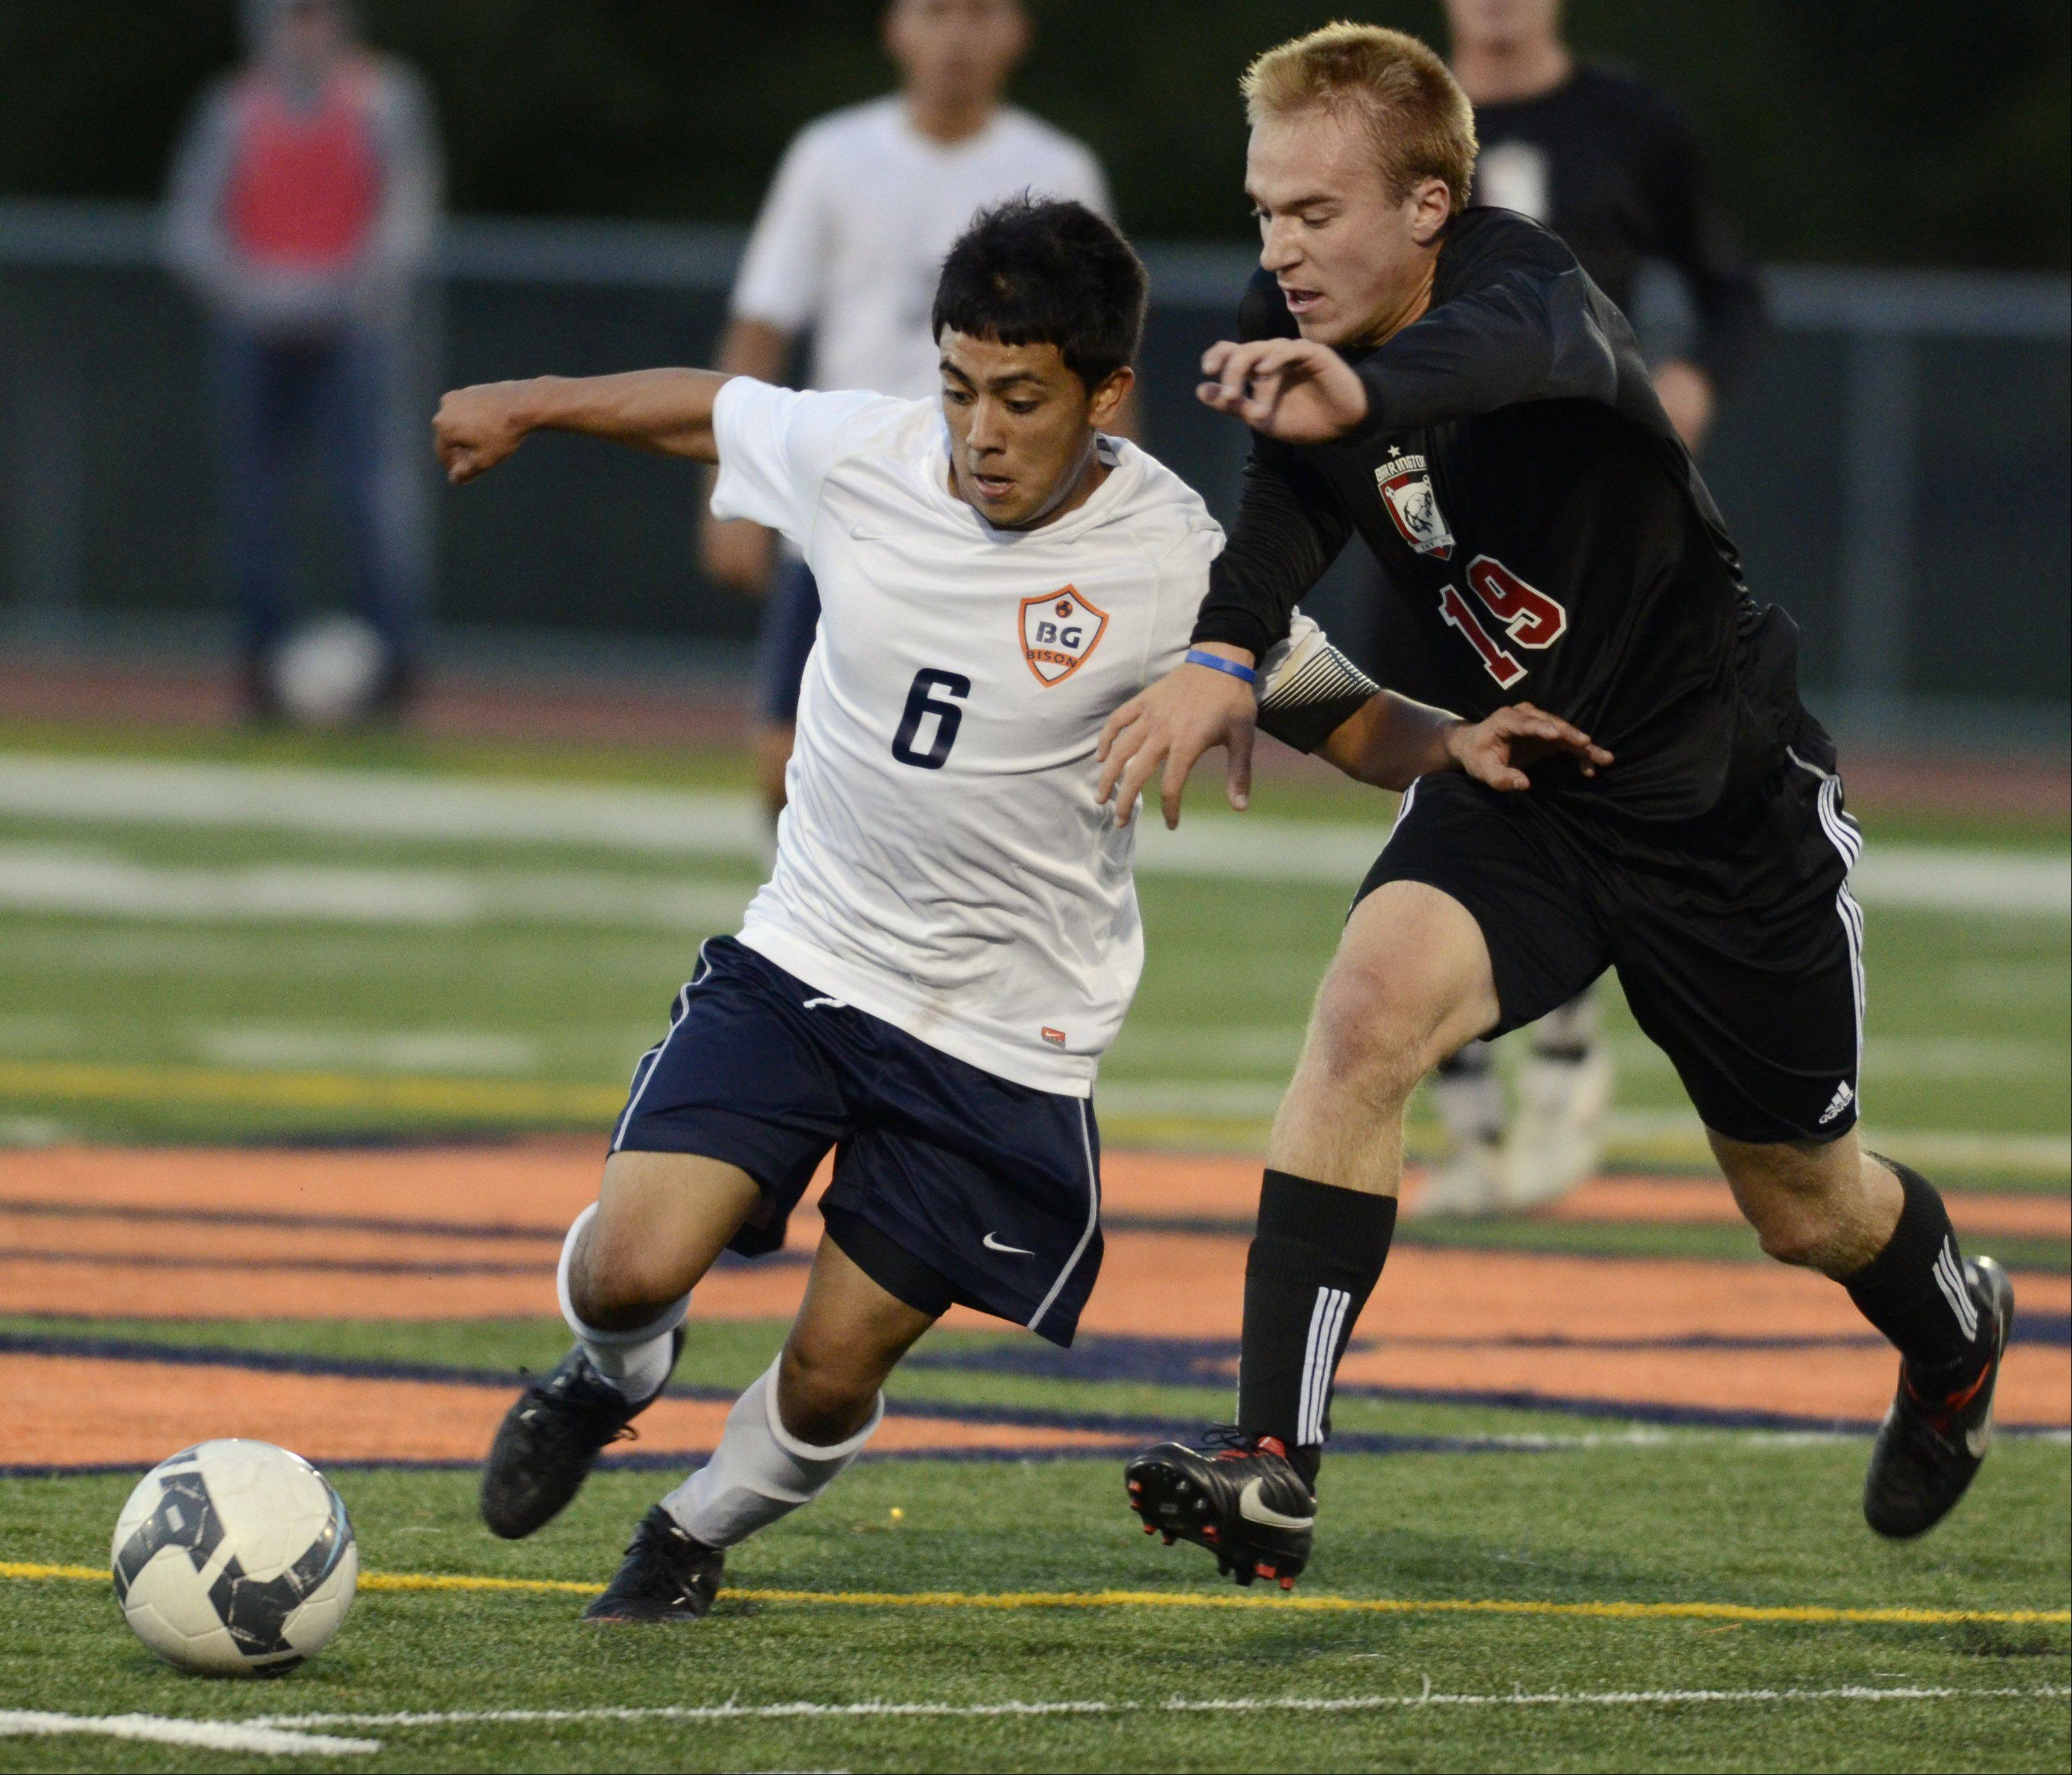 Buffalo Grove's Irving Eloiza, left, and Barrington's Craig Zahour pursue the ball during Tuesday's game.